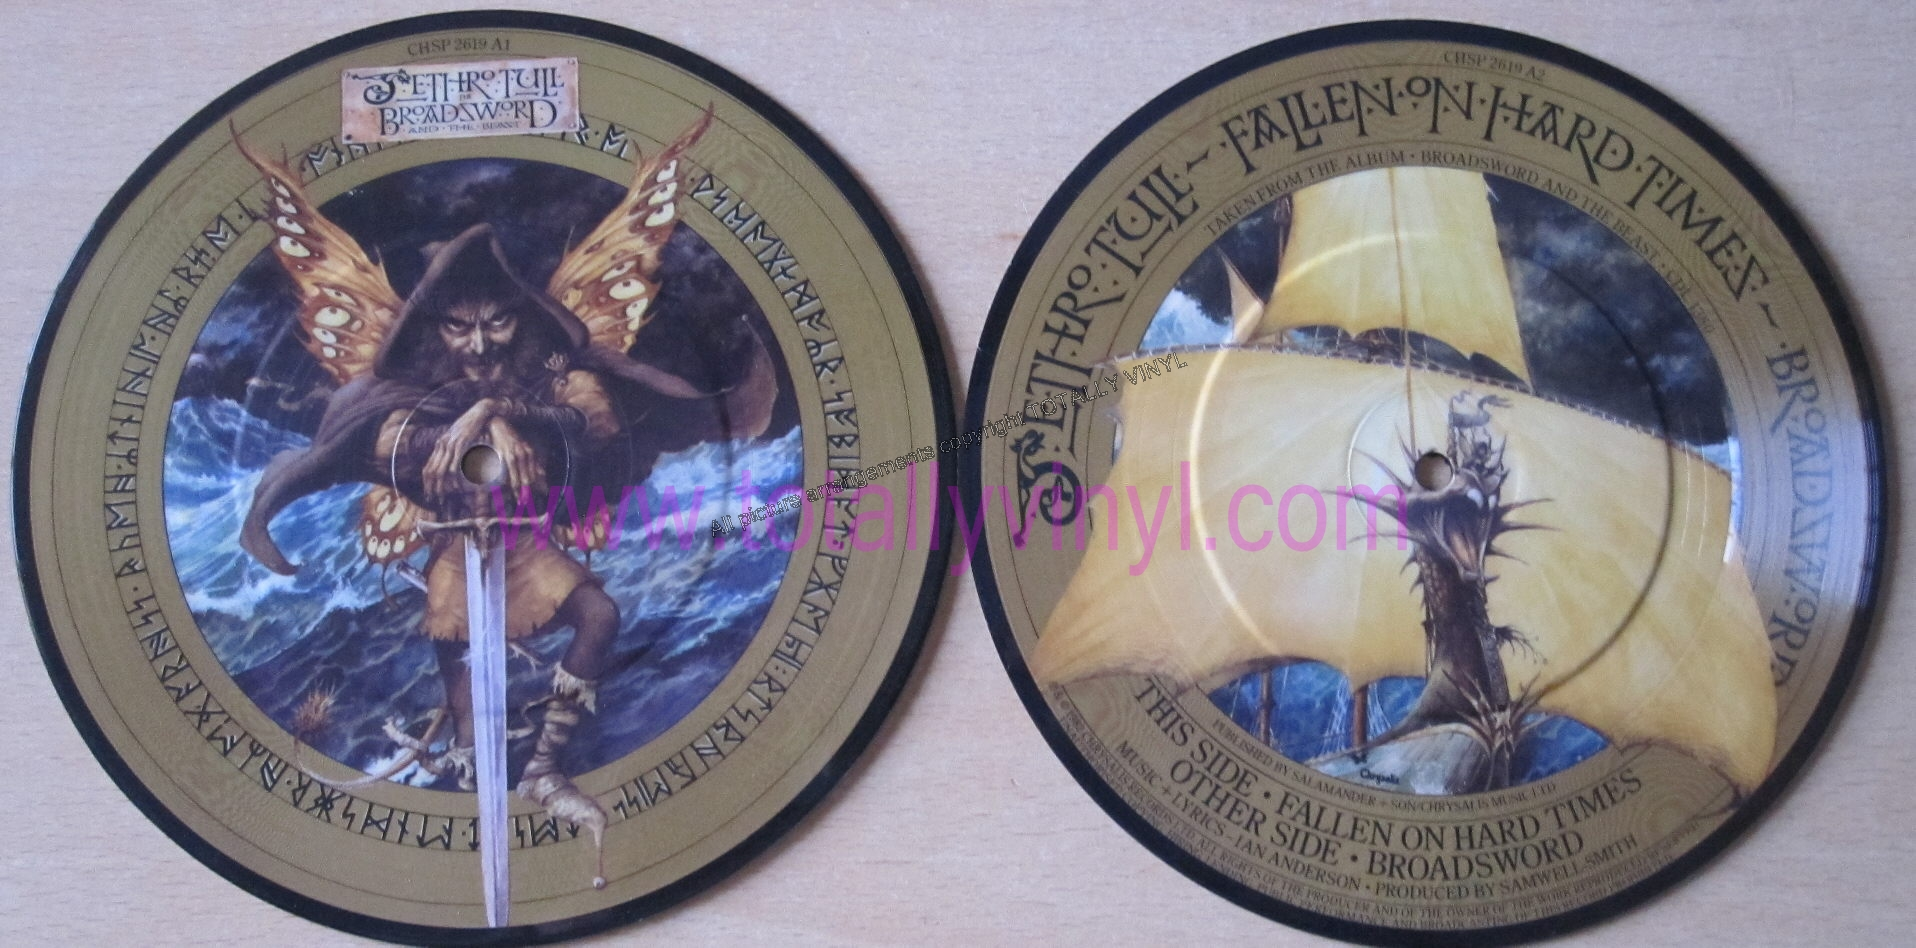 Totally Vinyl Records Jethro Tull Broadsword 7 Inch